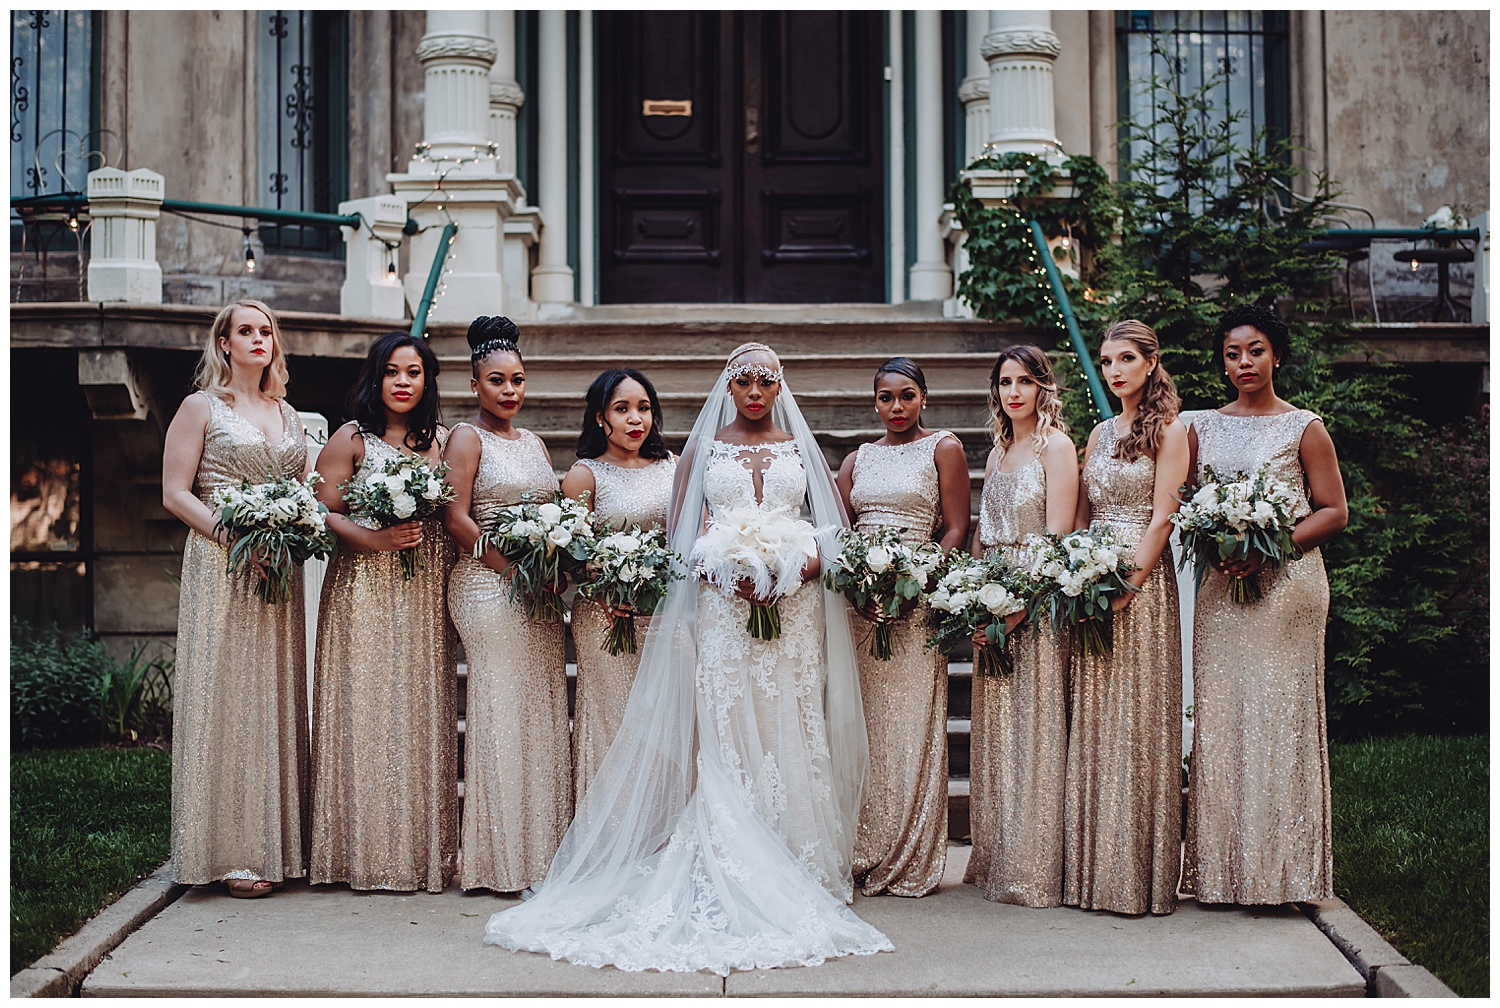 Keith House Chicago Wedding, The Adamkovi, bridesmaids and bride group photo